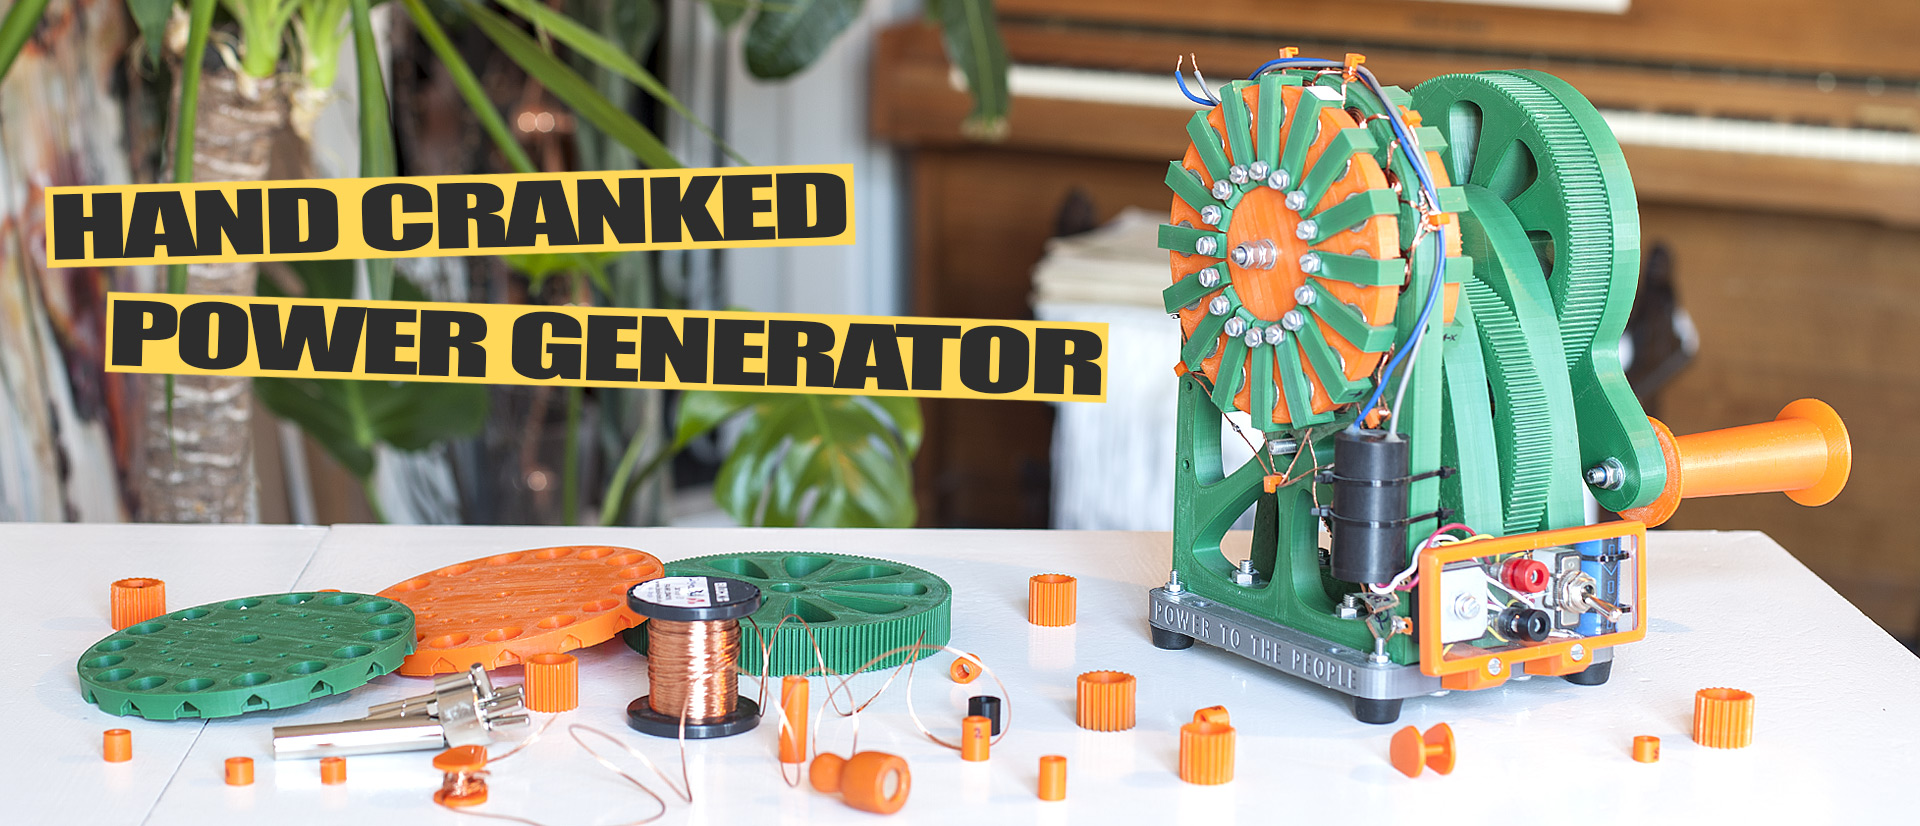 Justpressprint 3d printed Power Generator v1 and parts